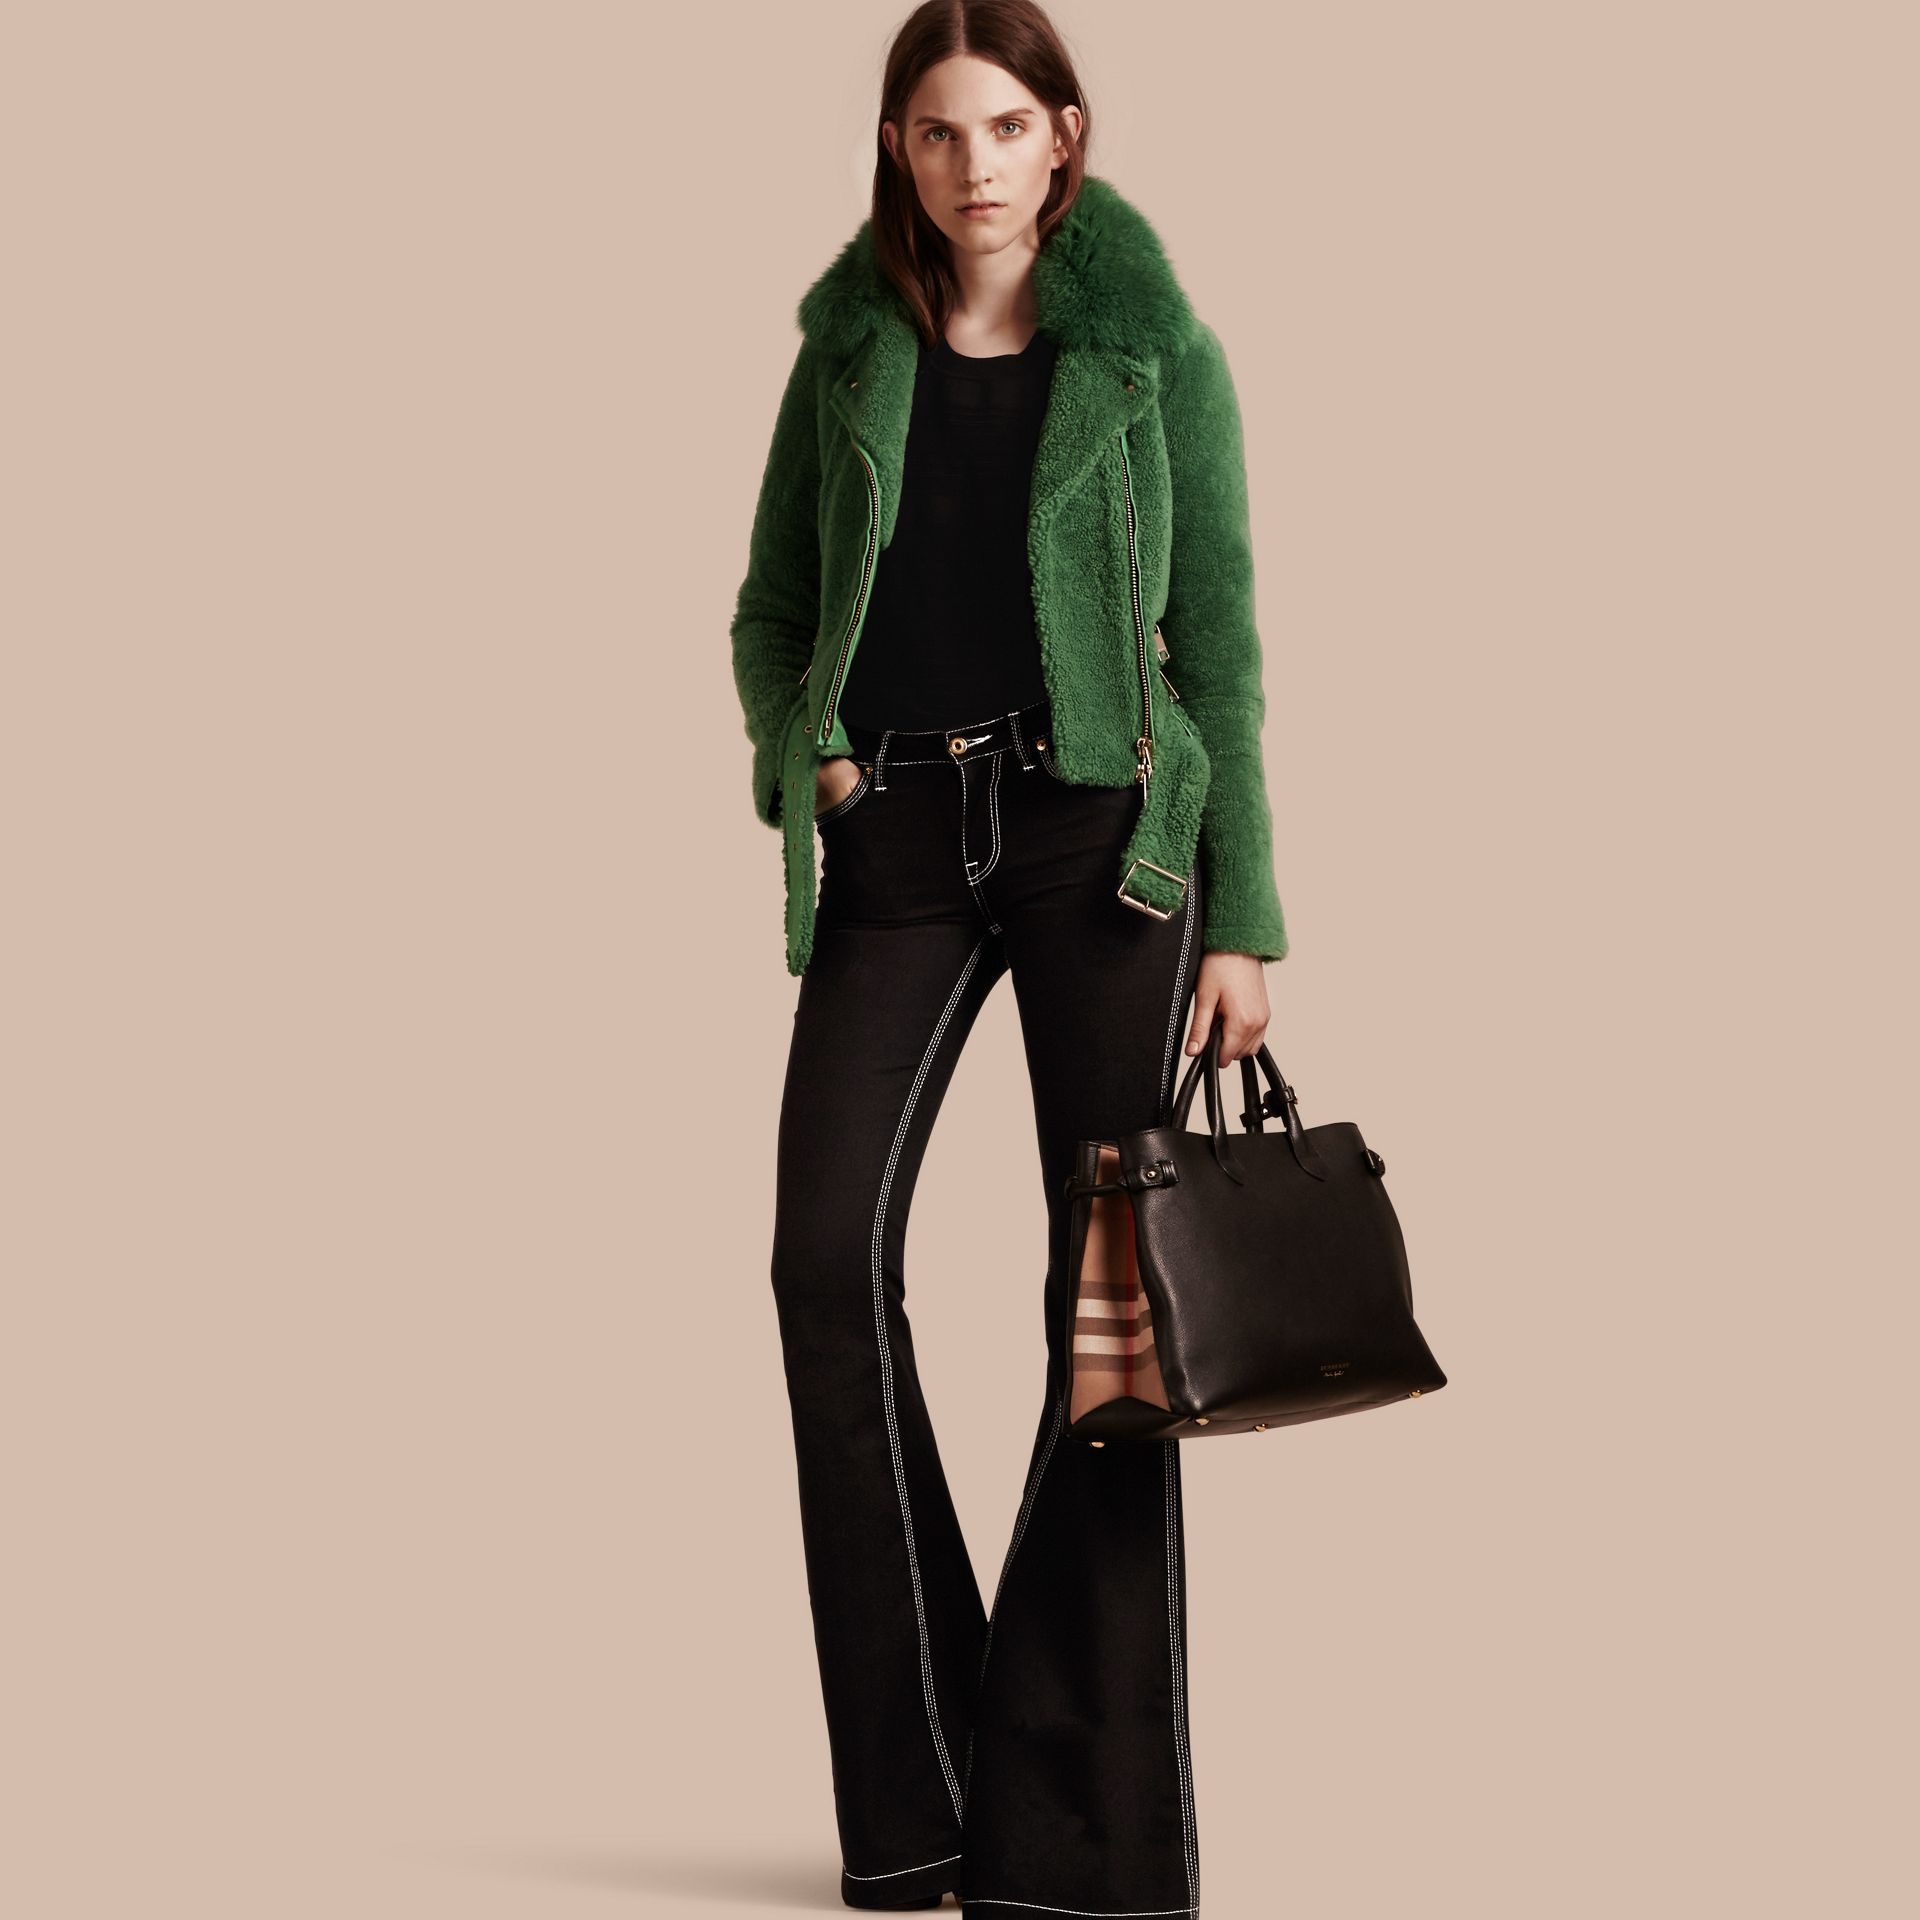 Pigment green Shearling Biker Jacket with Fur Collar Pigment Green - gallery image 1